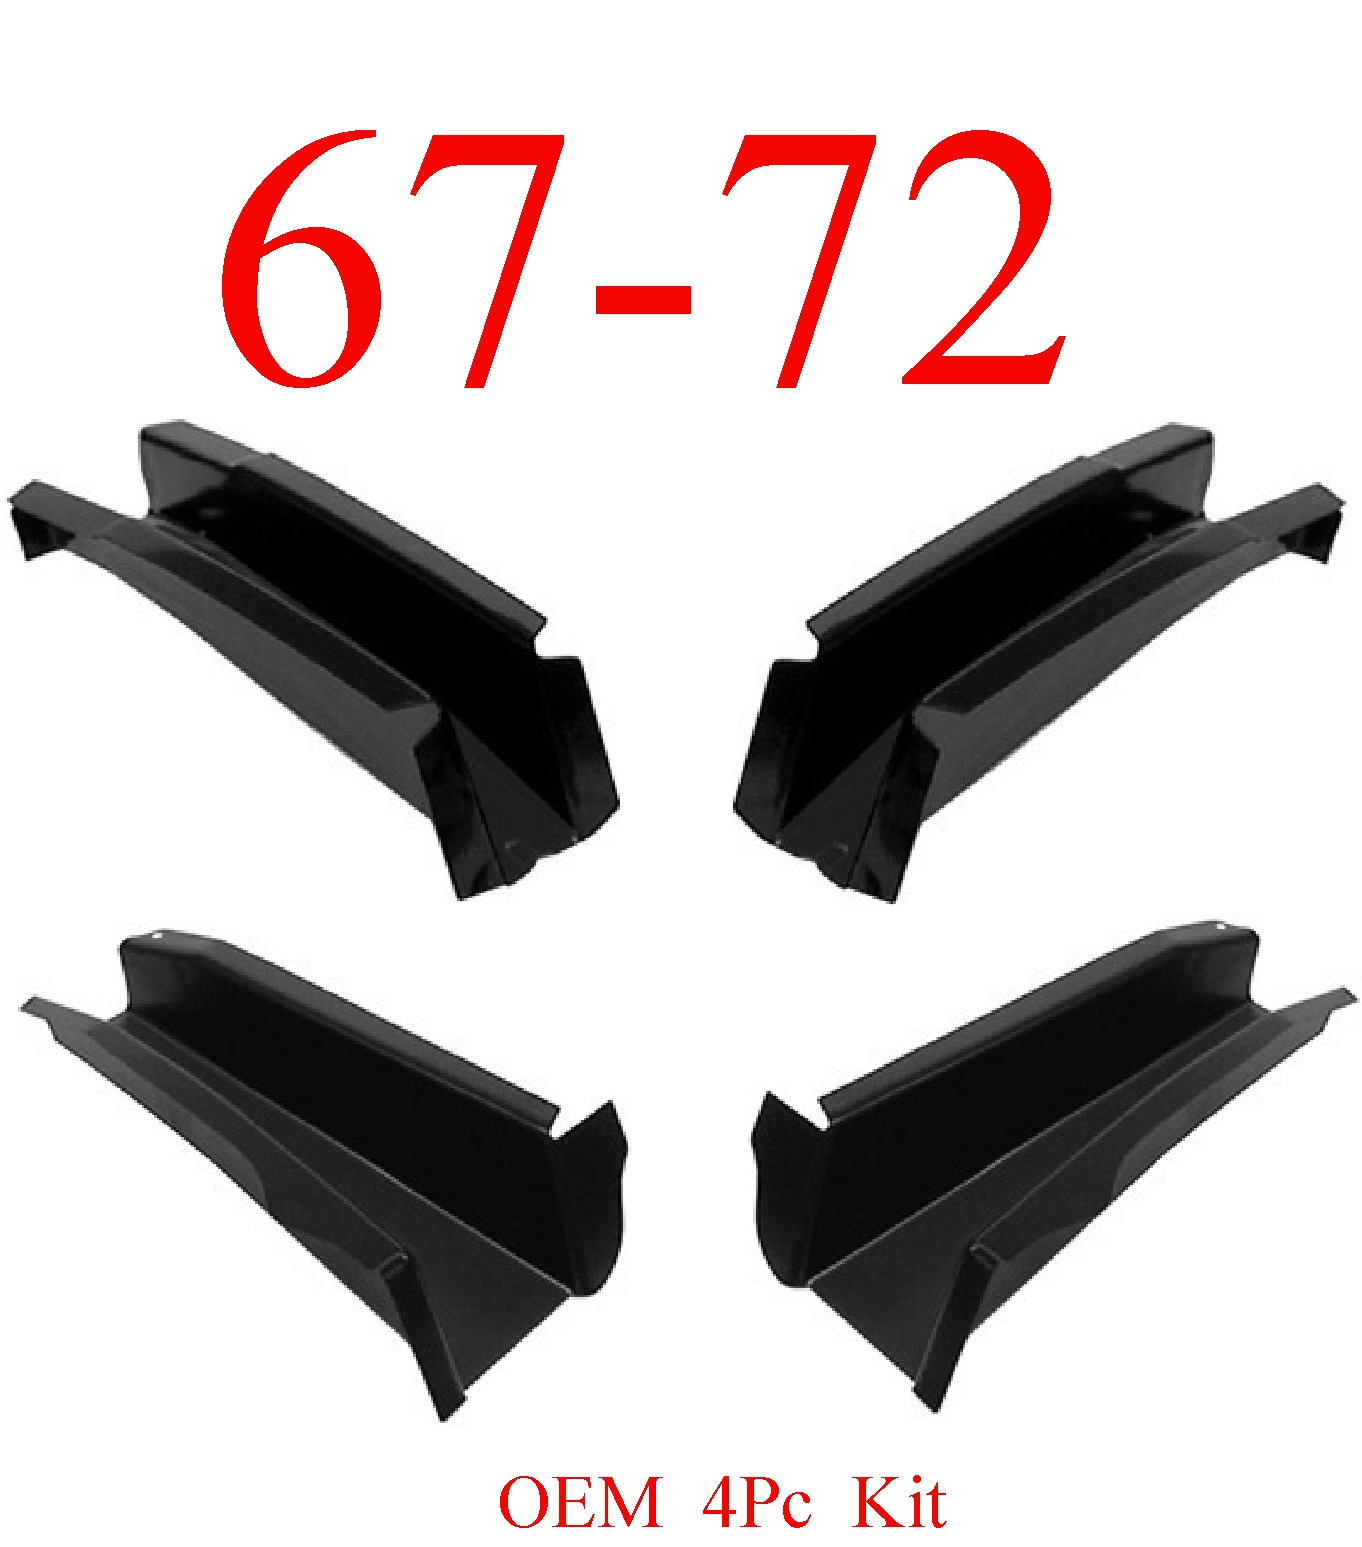 67-72 Chevy 4Pc OEM Cab Floor Support Kit